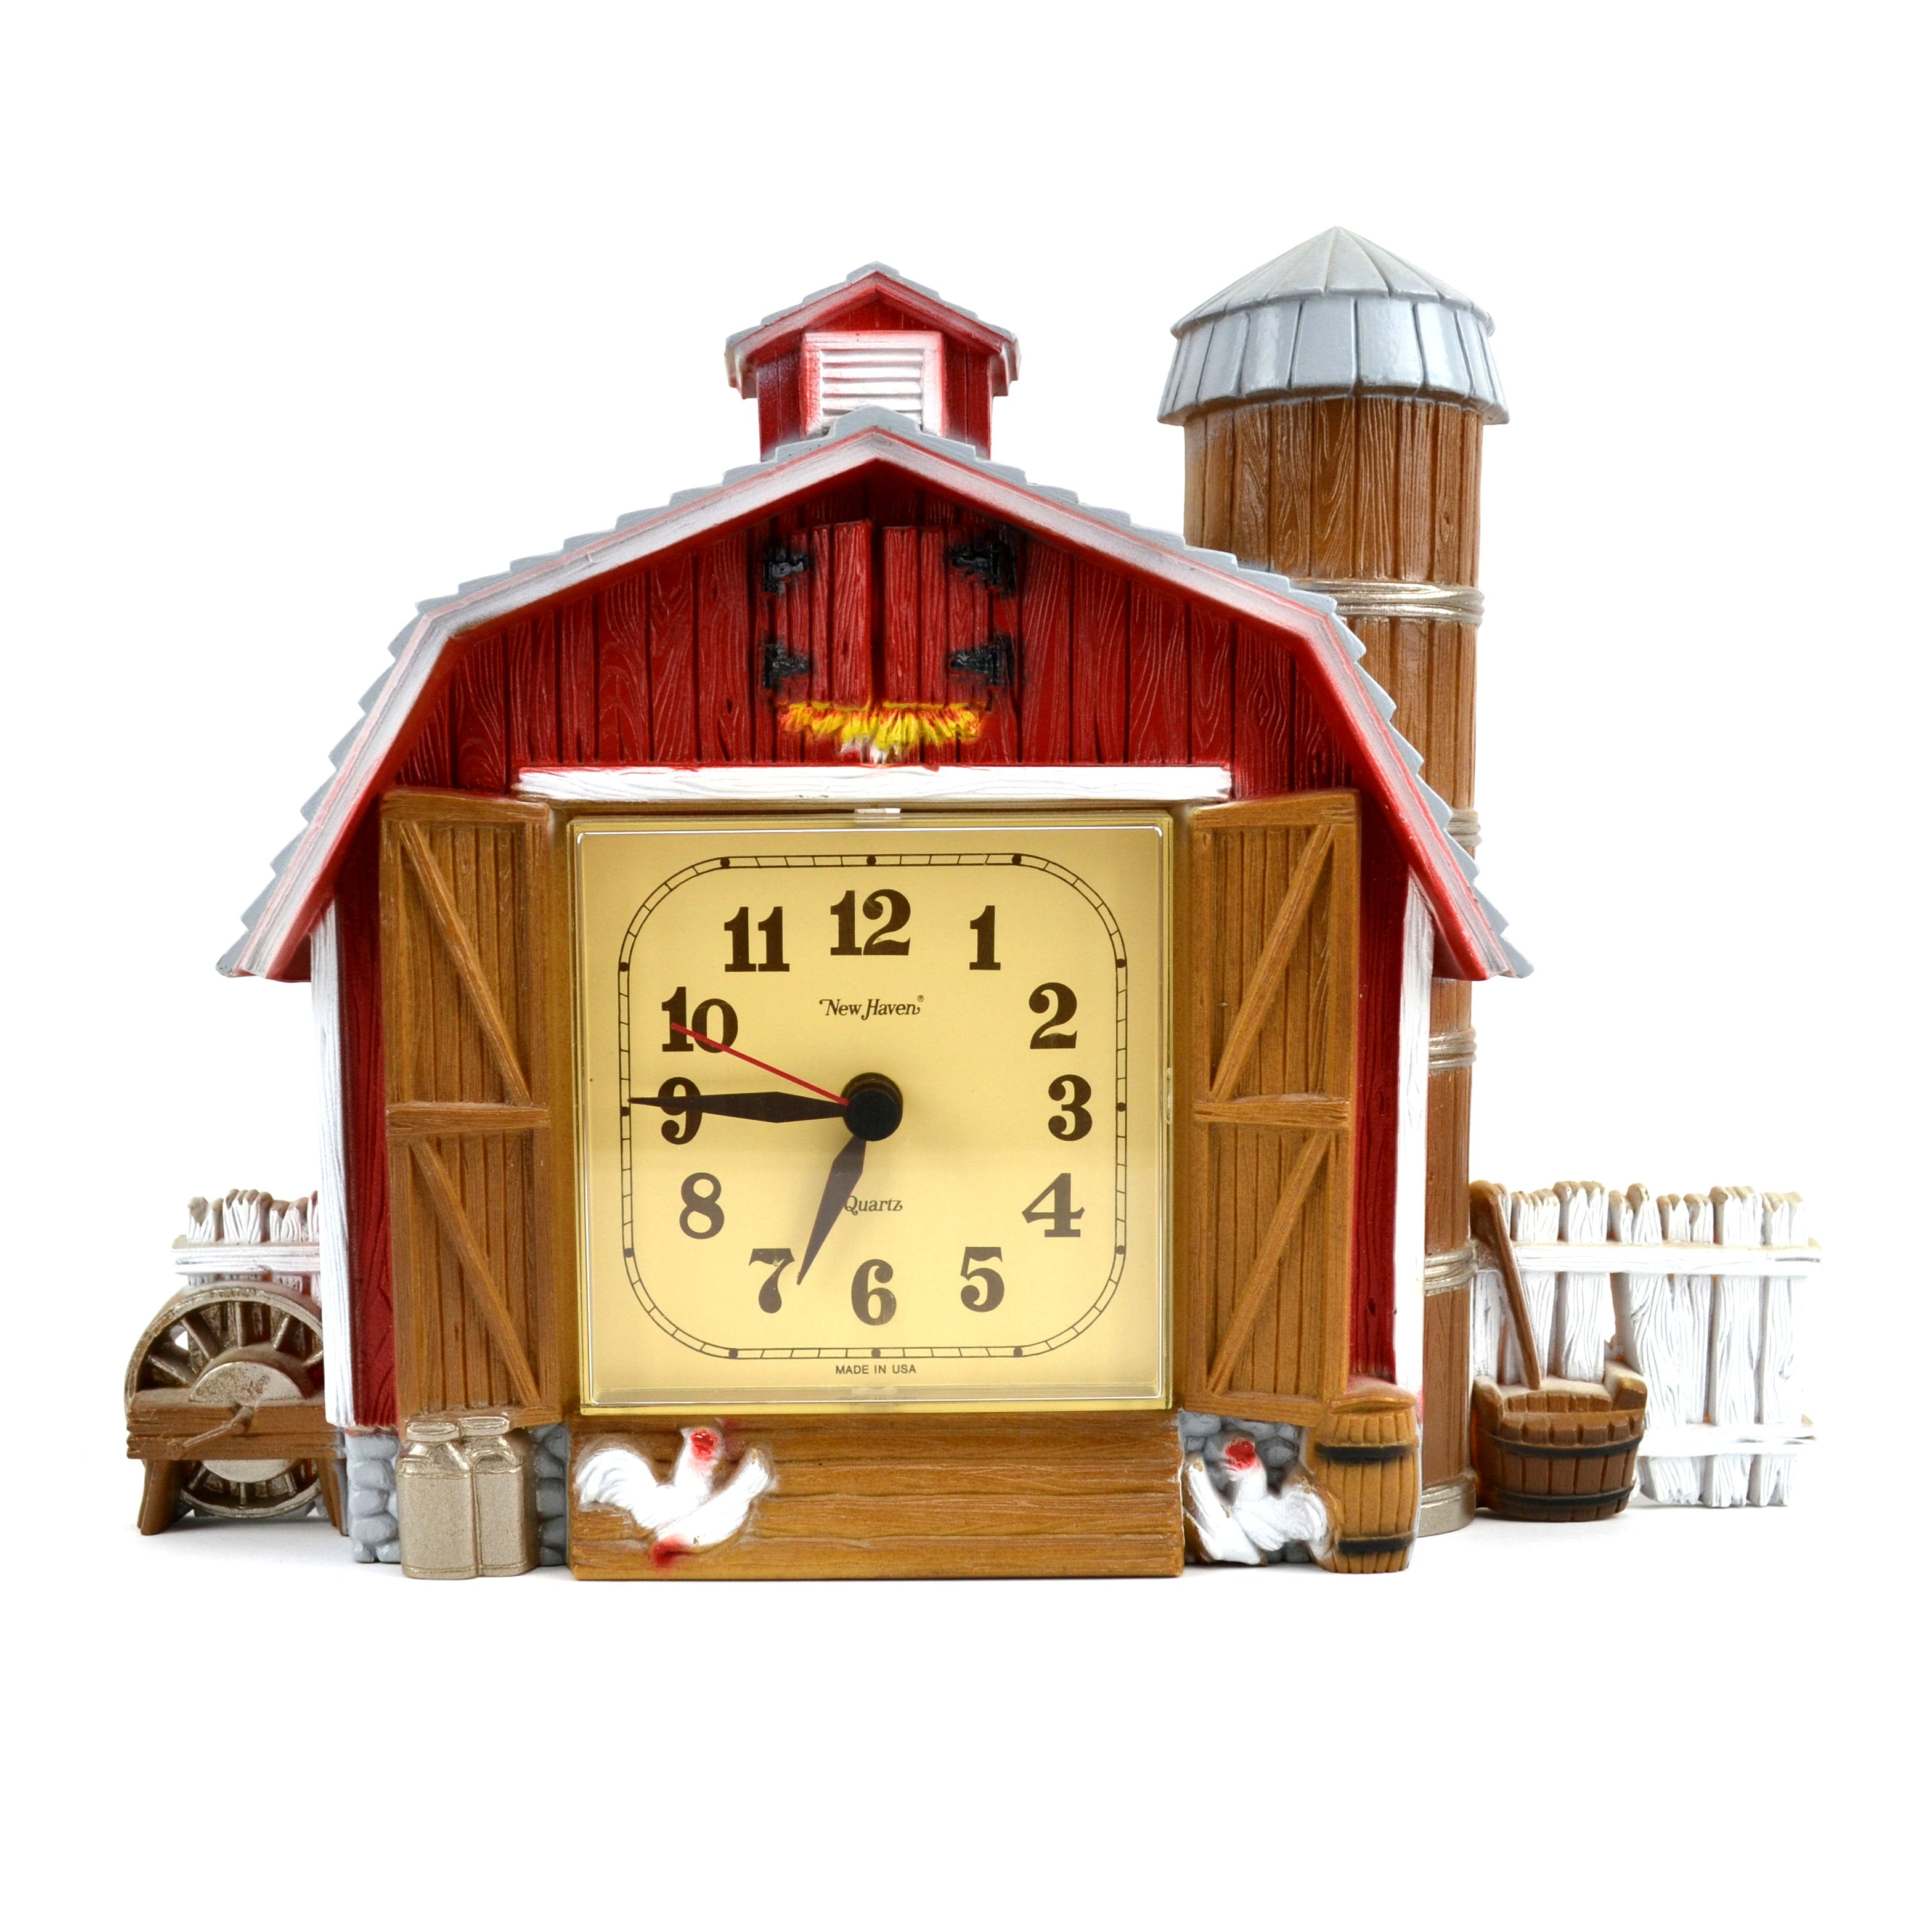 Vintage Farmhouse Kitchen Battery Operated Barn Clock 1970s New Haven Burwood Products